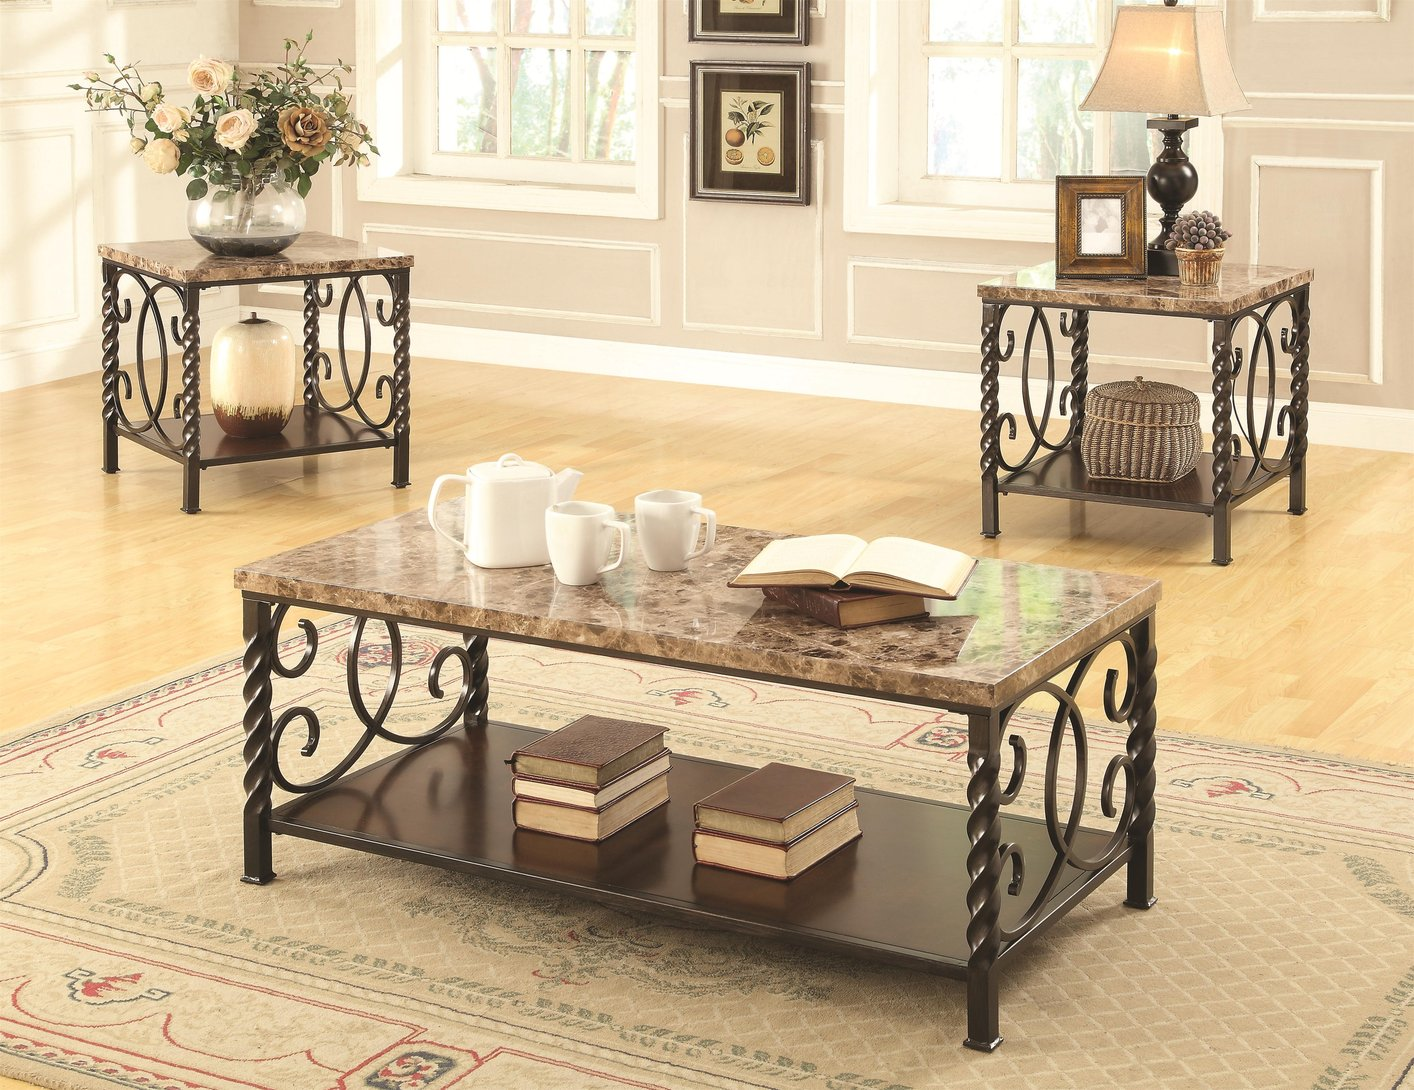 Lockhart Brown Marble Coffee Table Set - Steal-A-Sofa Furniture ...